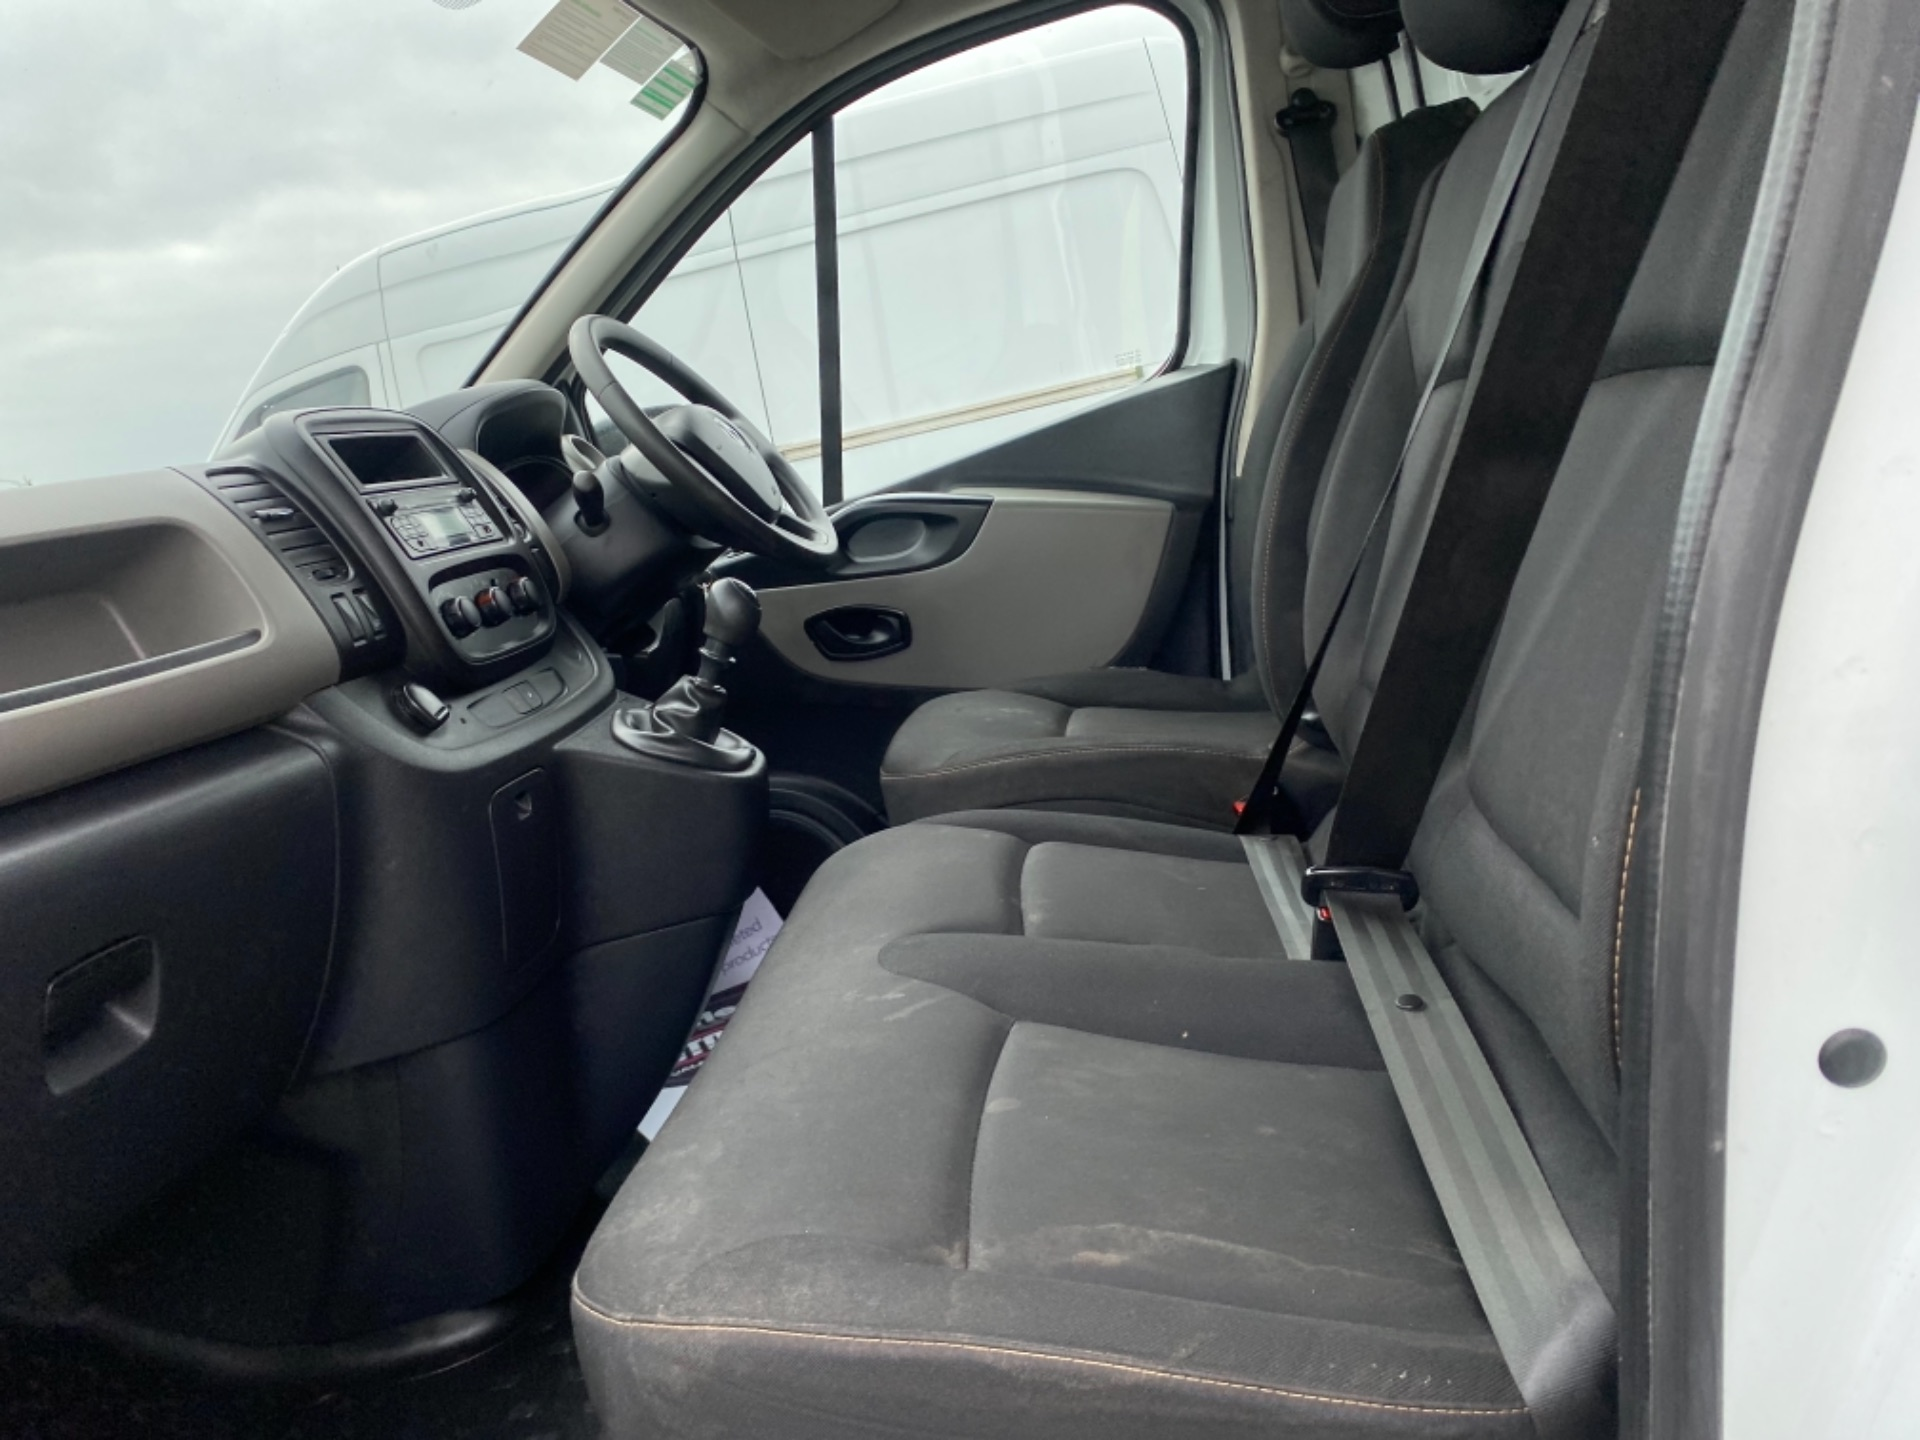 2018 Renault Trafic LL29 DCI 120 Business 3DR (181D11568) Image 11